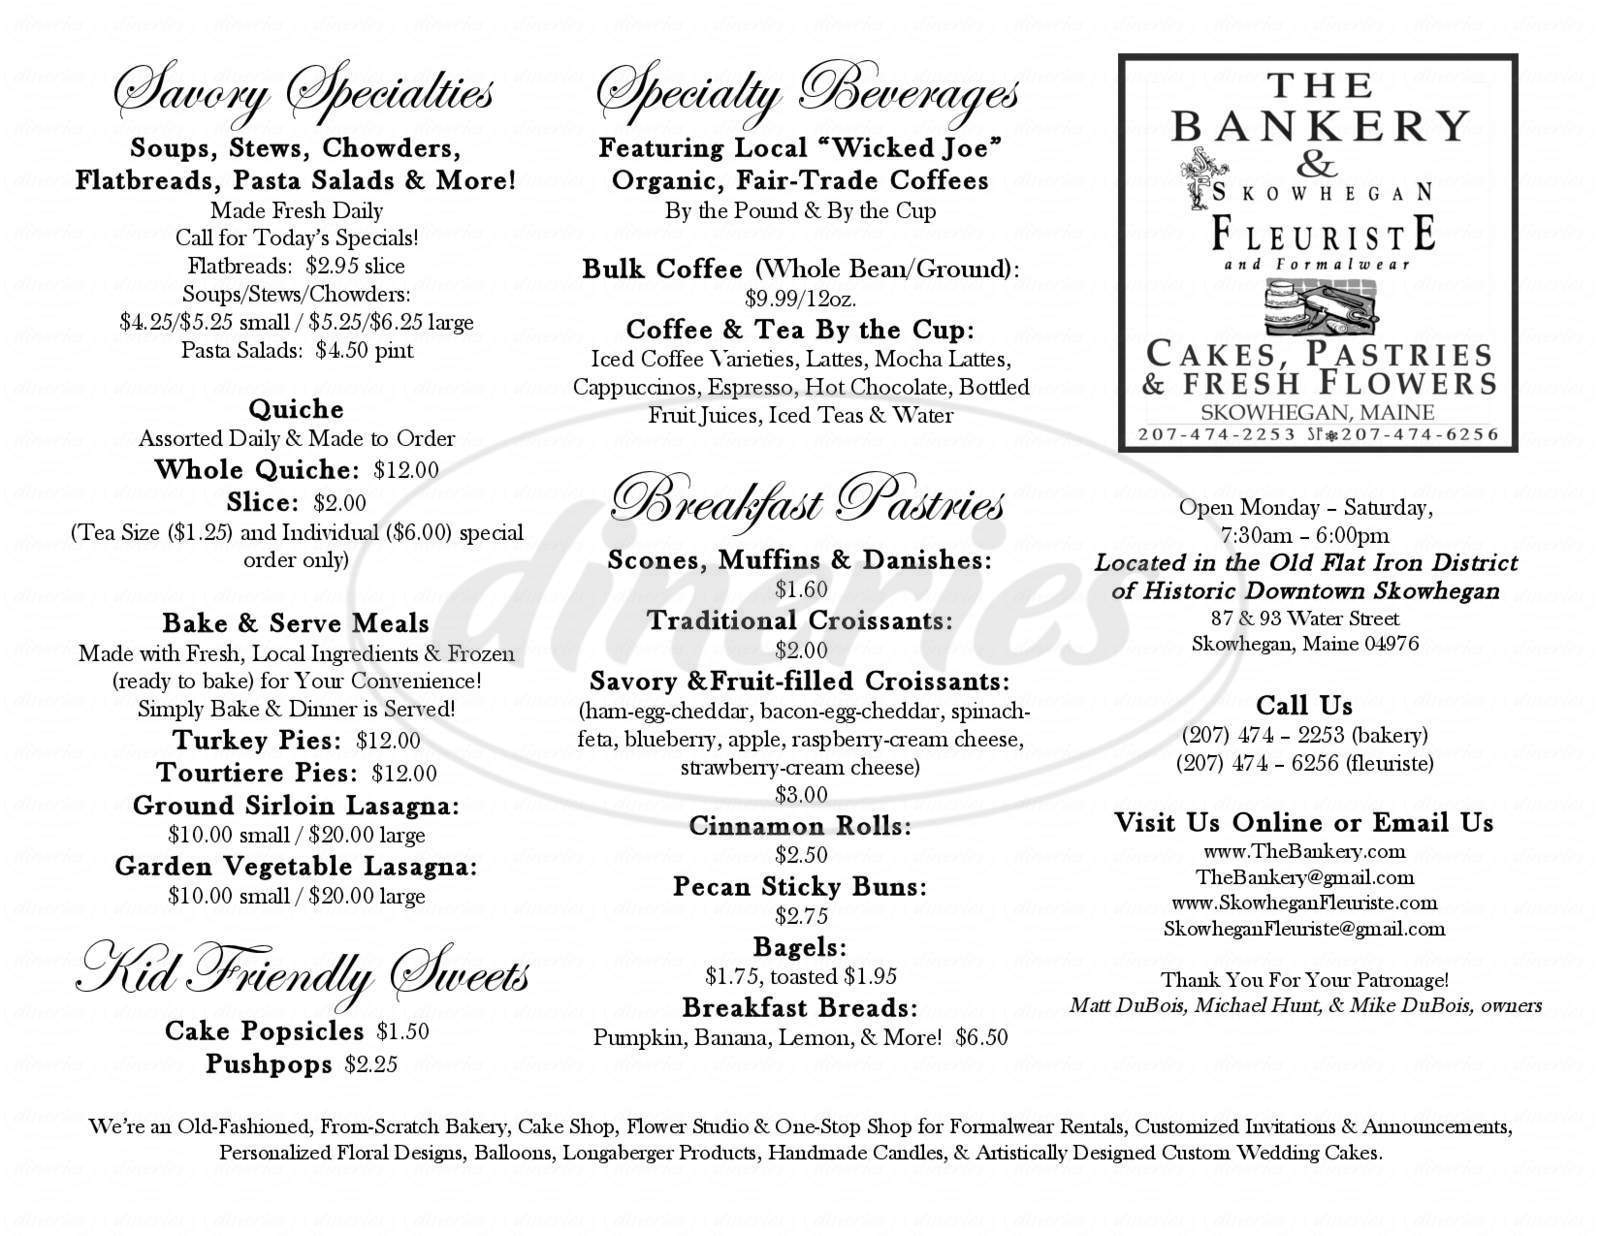 menu for The Bankery